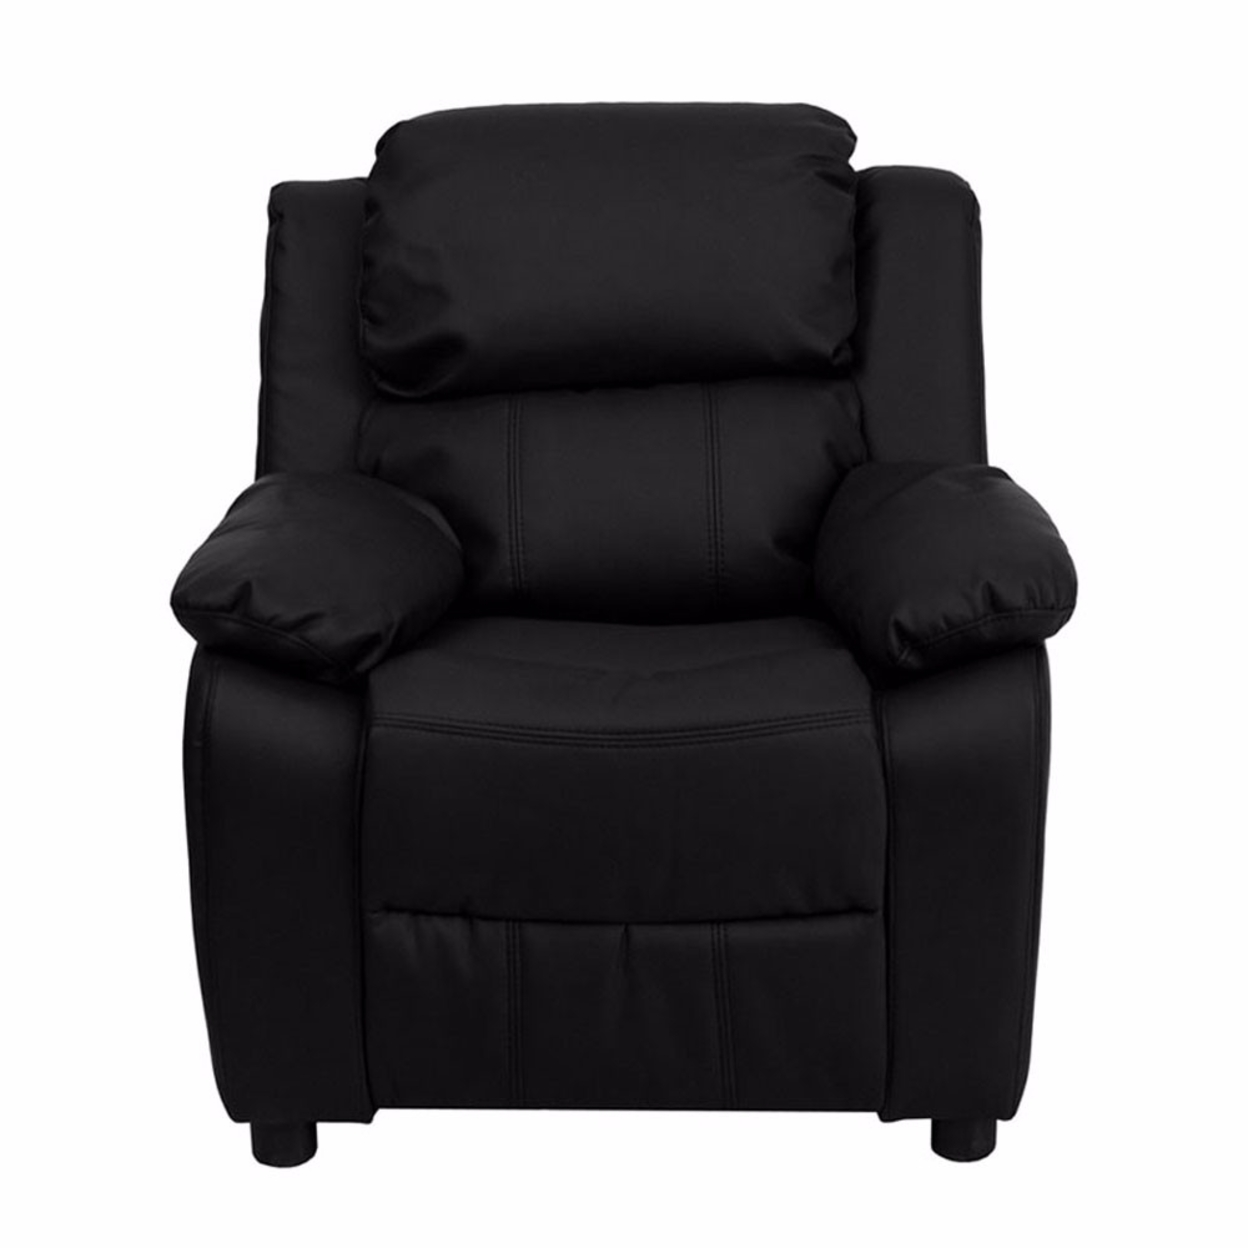 Flash Furniture Deluxe Heavily Padded Contemporary Black Leather Kids Recliner with Storage Arms [863-Bt-7985-Kid-Bk-Lea-Gg] 59e46012e224613cbd38438e